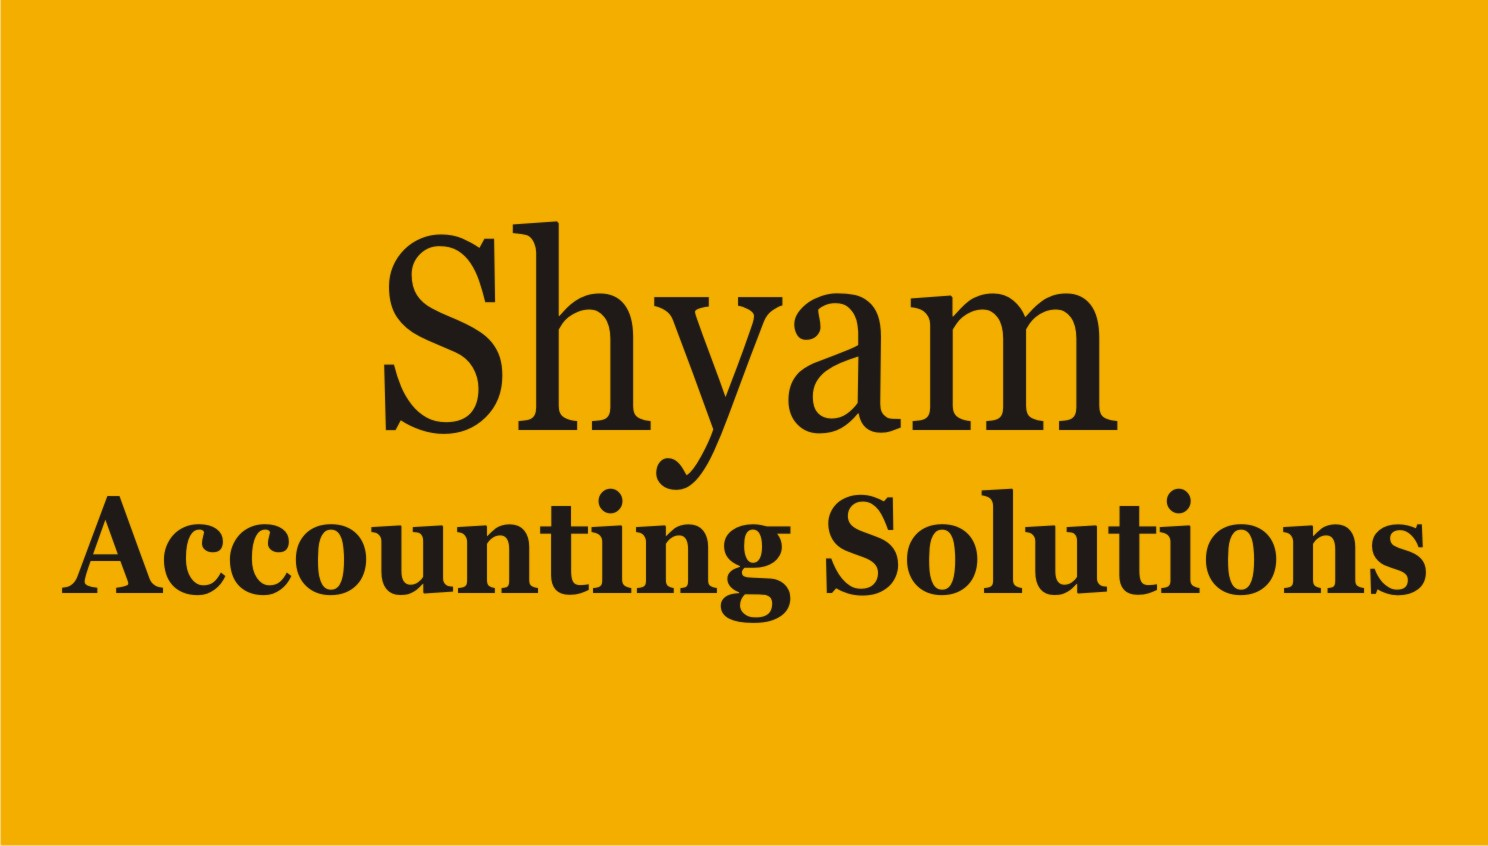 Shyam Accouting Solutions